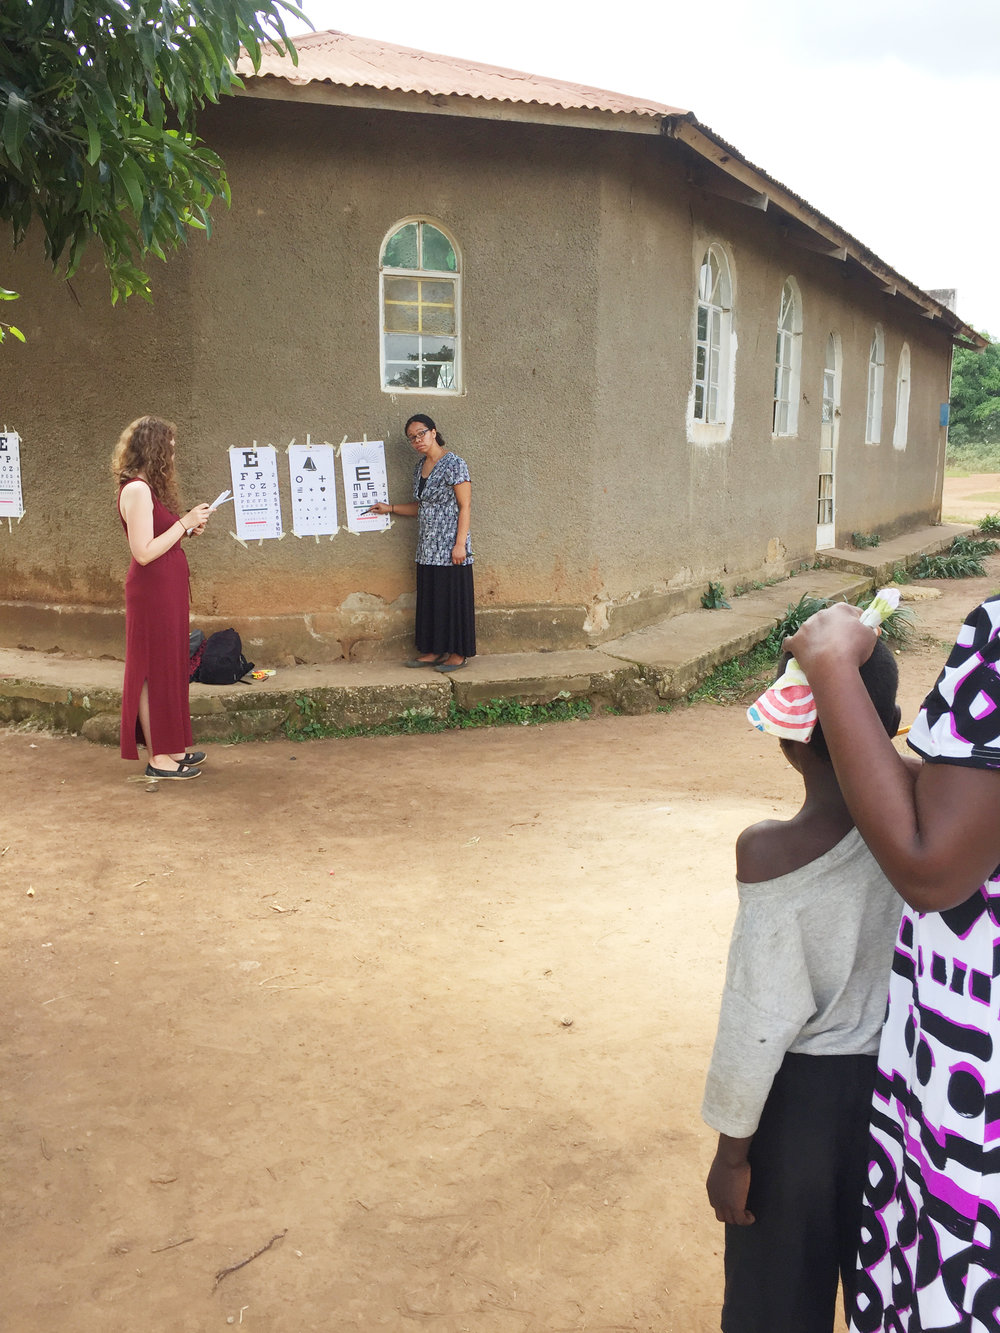 Institute for G.O.D. students Kara Hadley and Victoria Fields were able to utilize their skills in the health field to complete this project during their Immersion trip to Uganda.